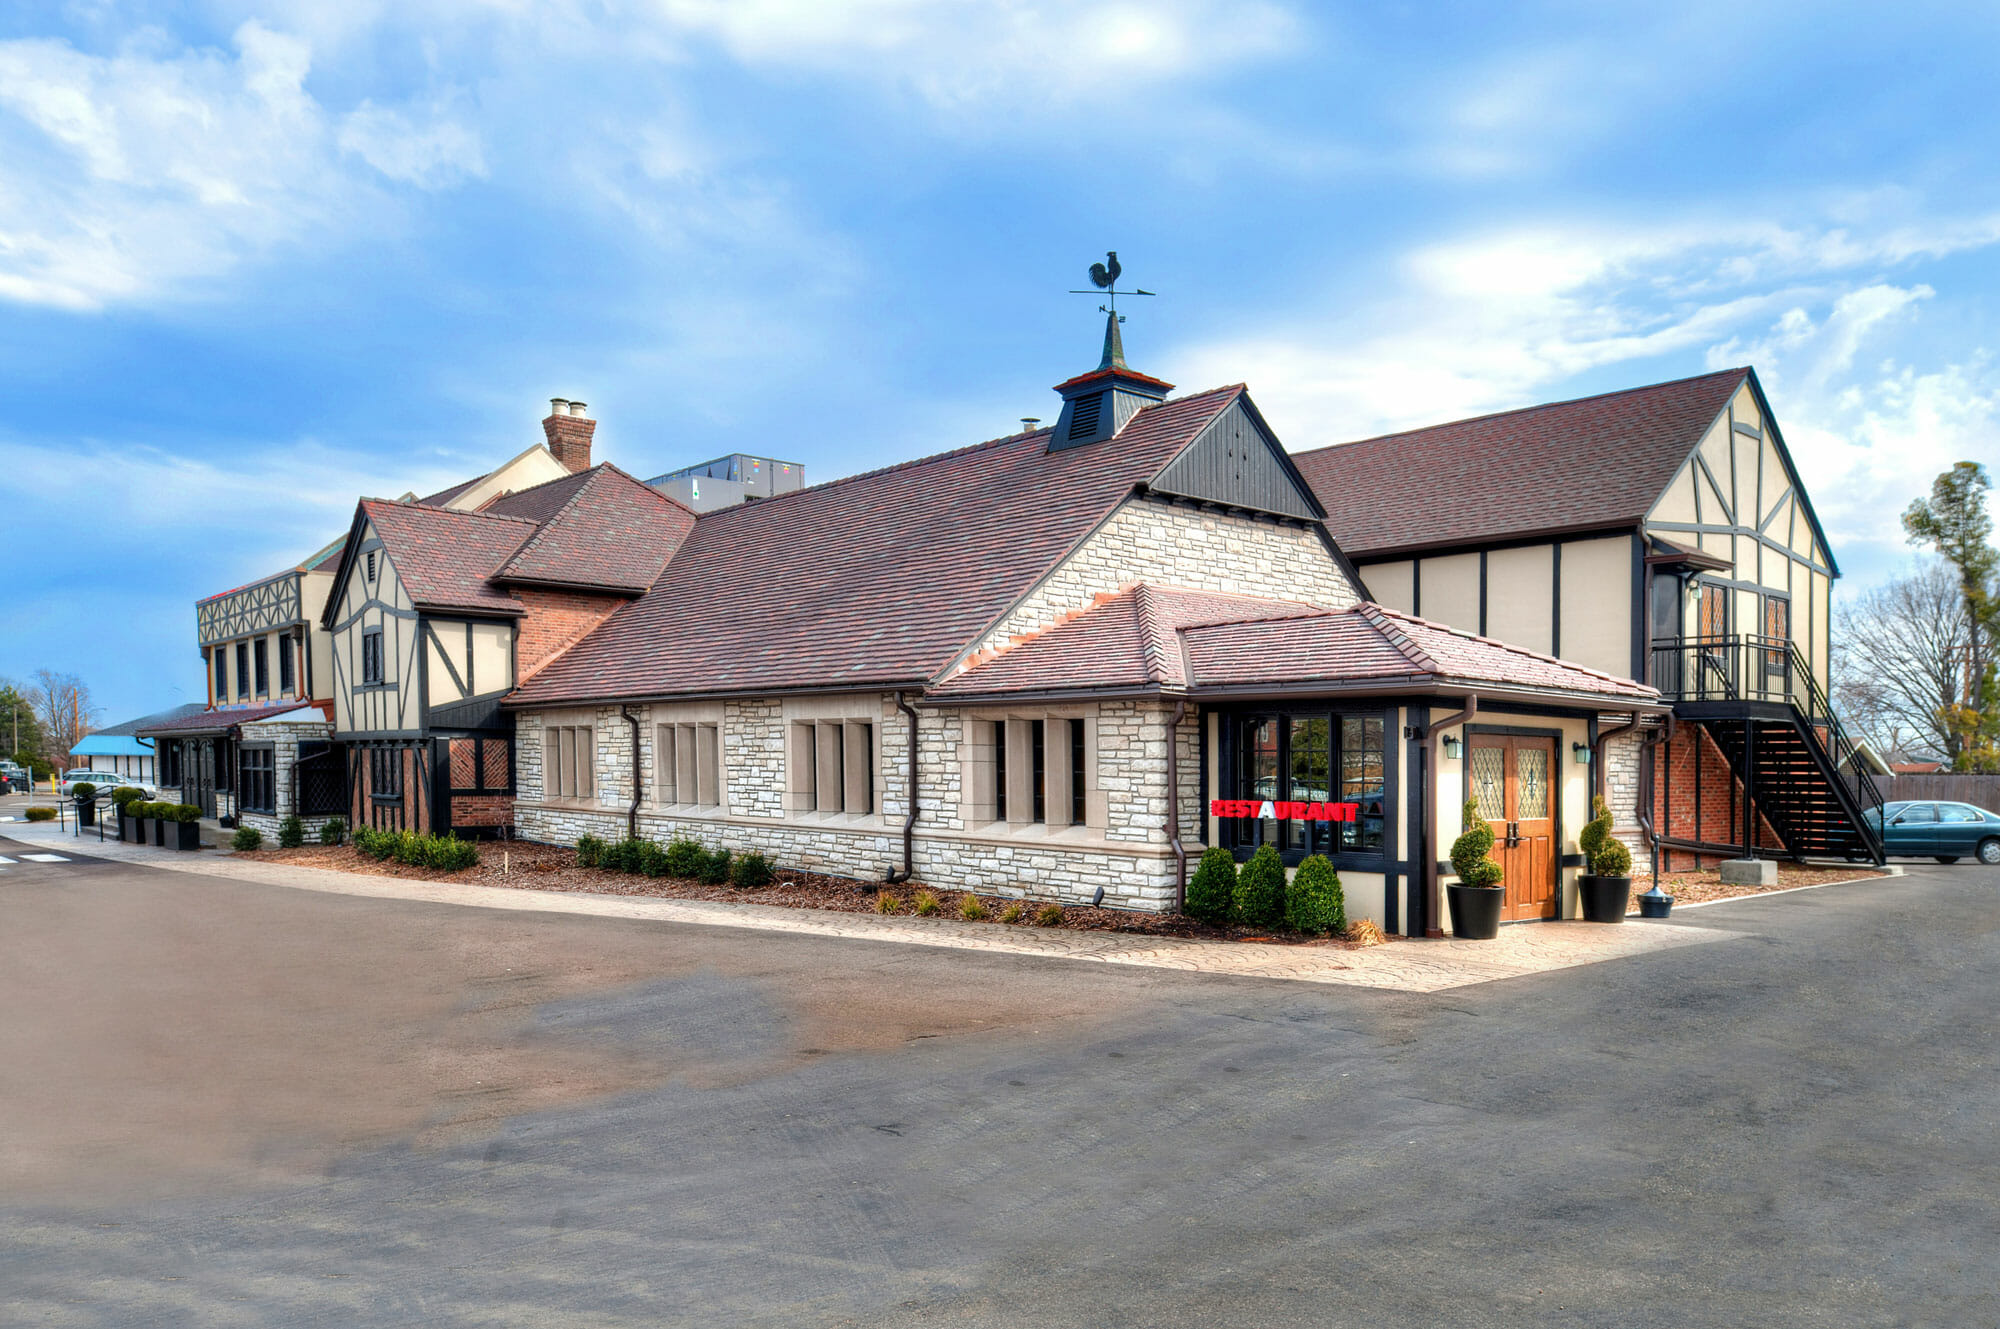 PARIC Corporation finished work on this 17,000 sq. foot Cheshire Restaurant Renovation